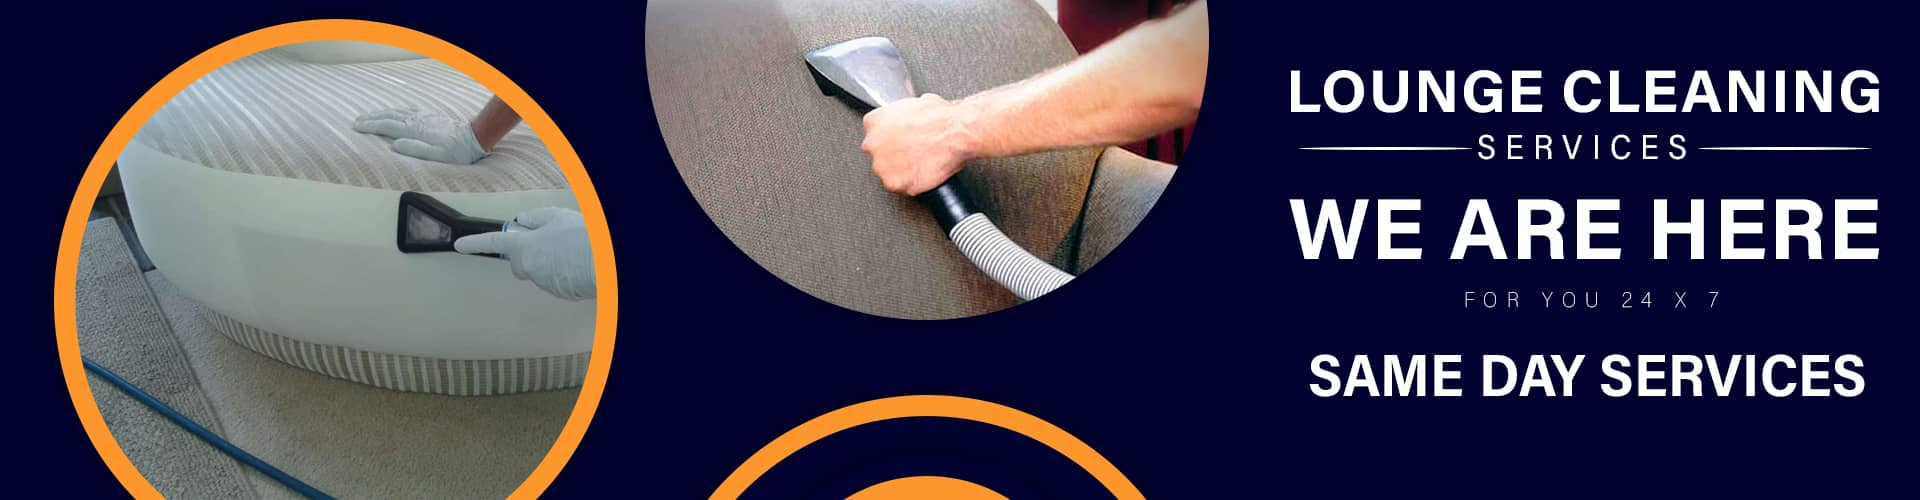 Lounge Cleaning Services